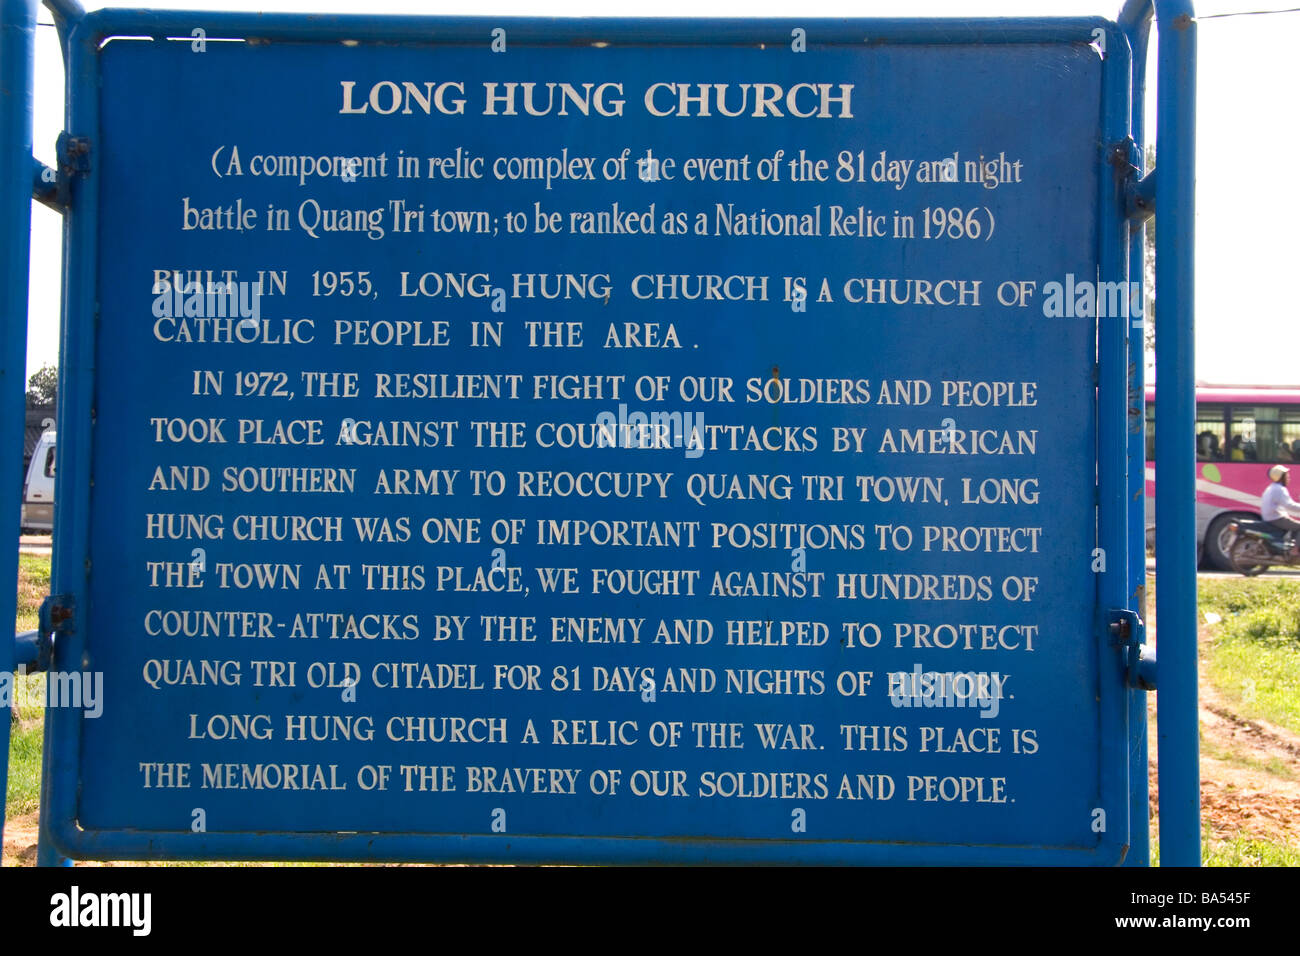 Sign marking the Long Hung Church in the town of Quang Tri Vietnam - Stock Image